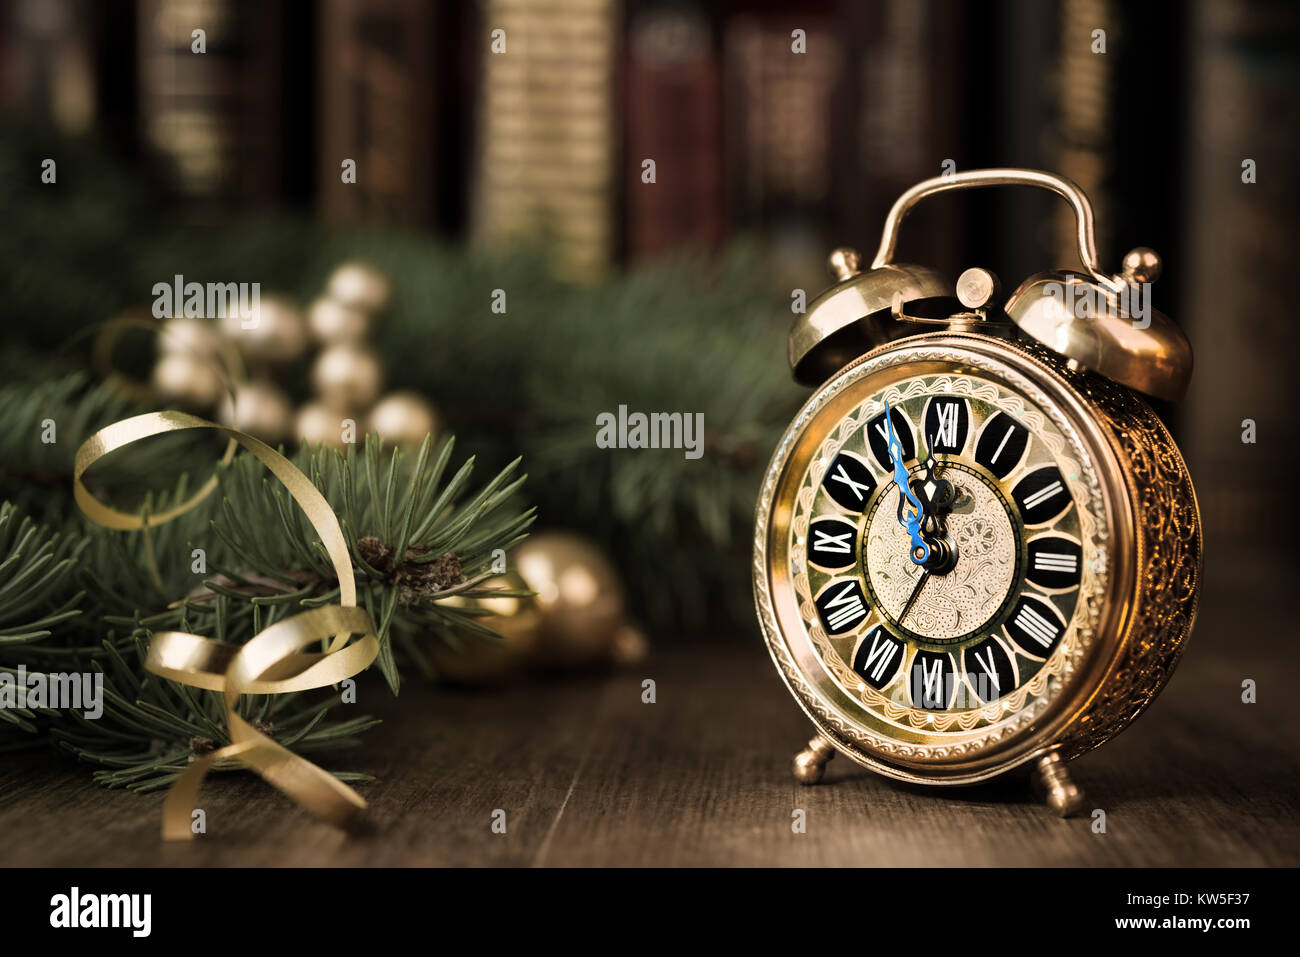 Vintage alarm clock in traditional study room showing five to midnight. Happy New Year! Stock Photo